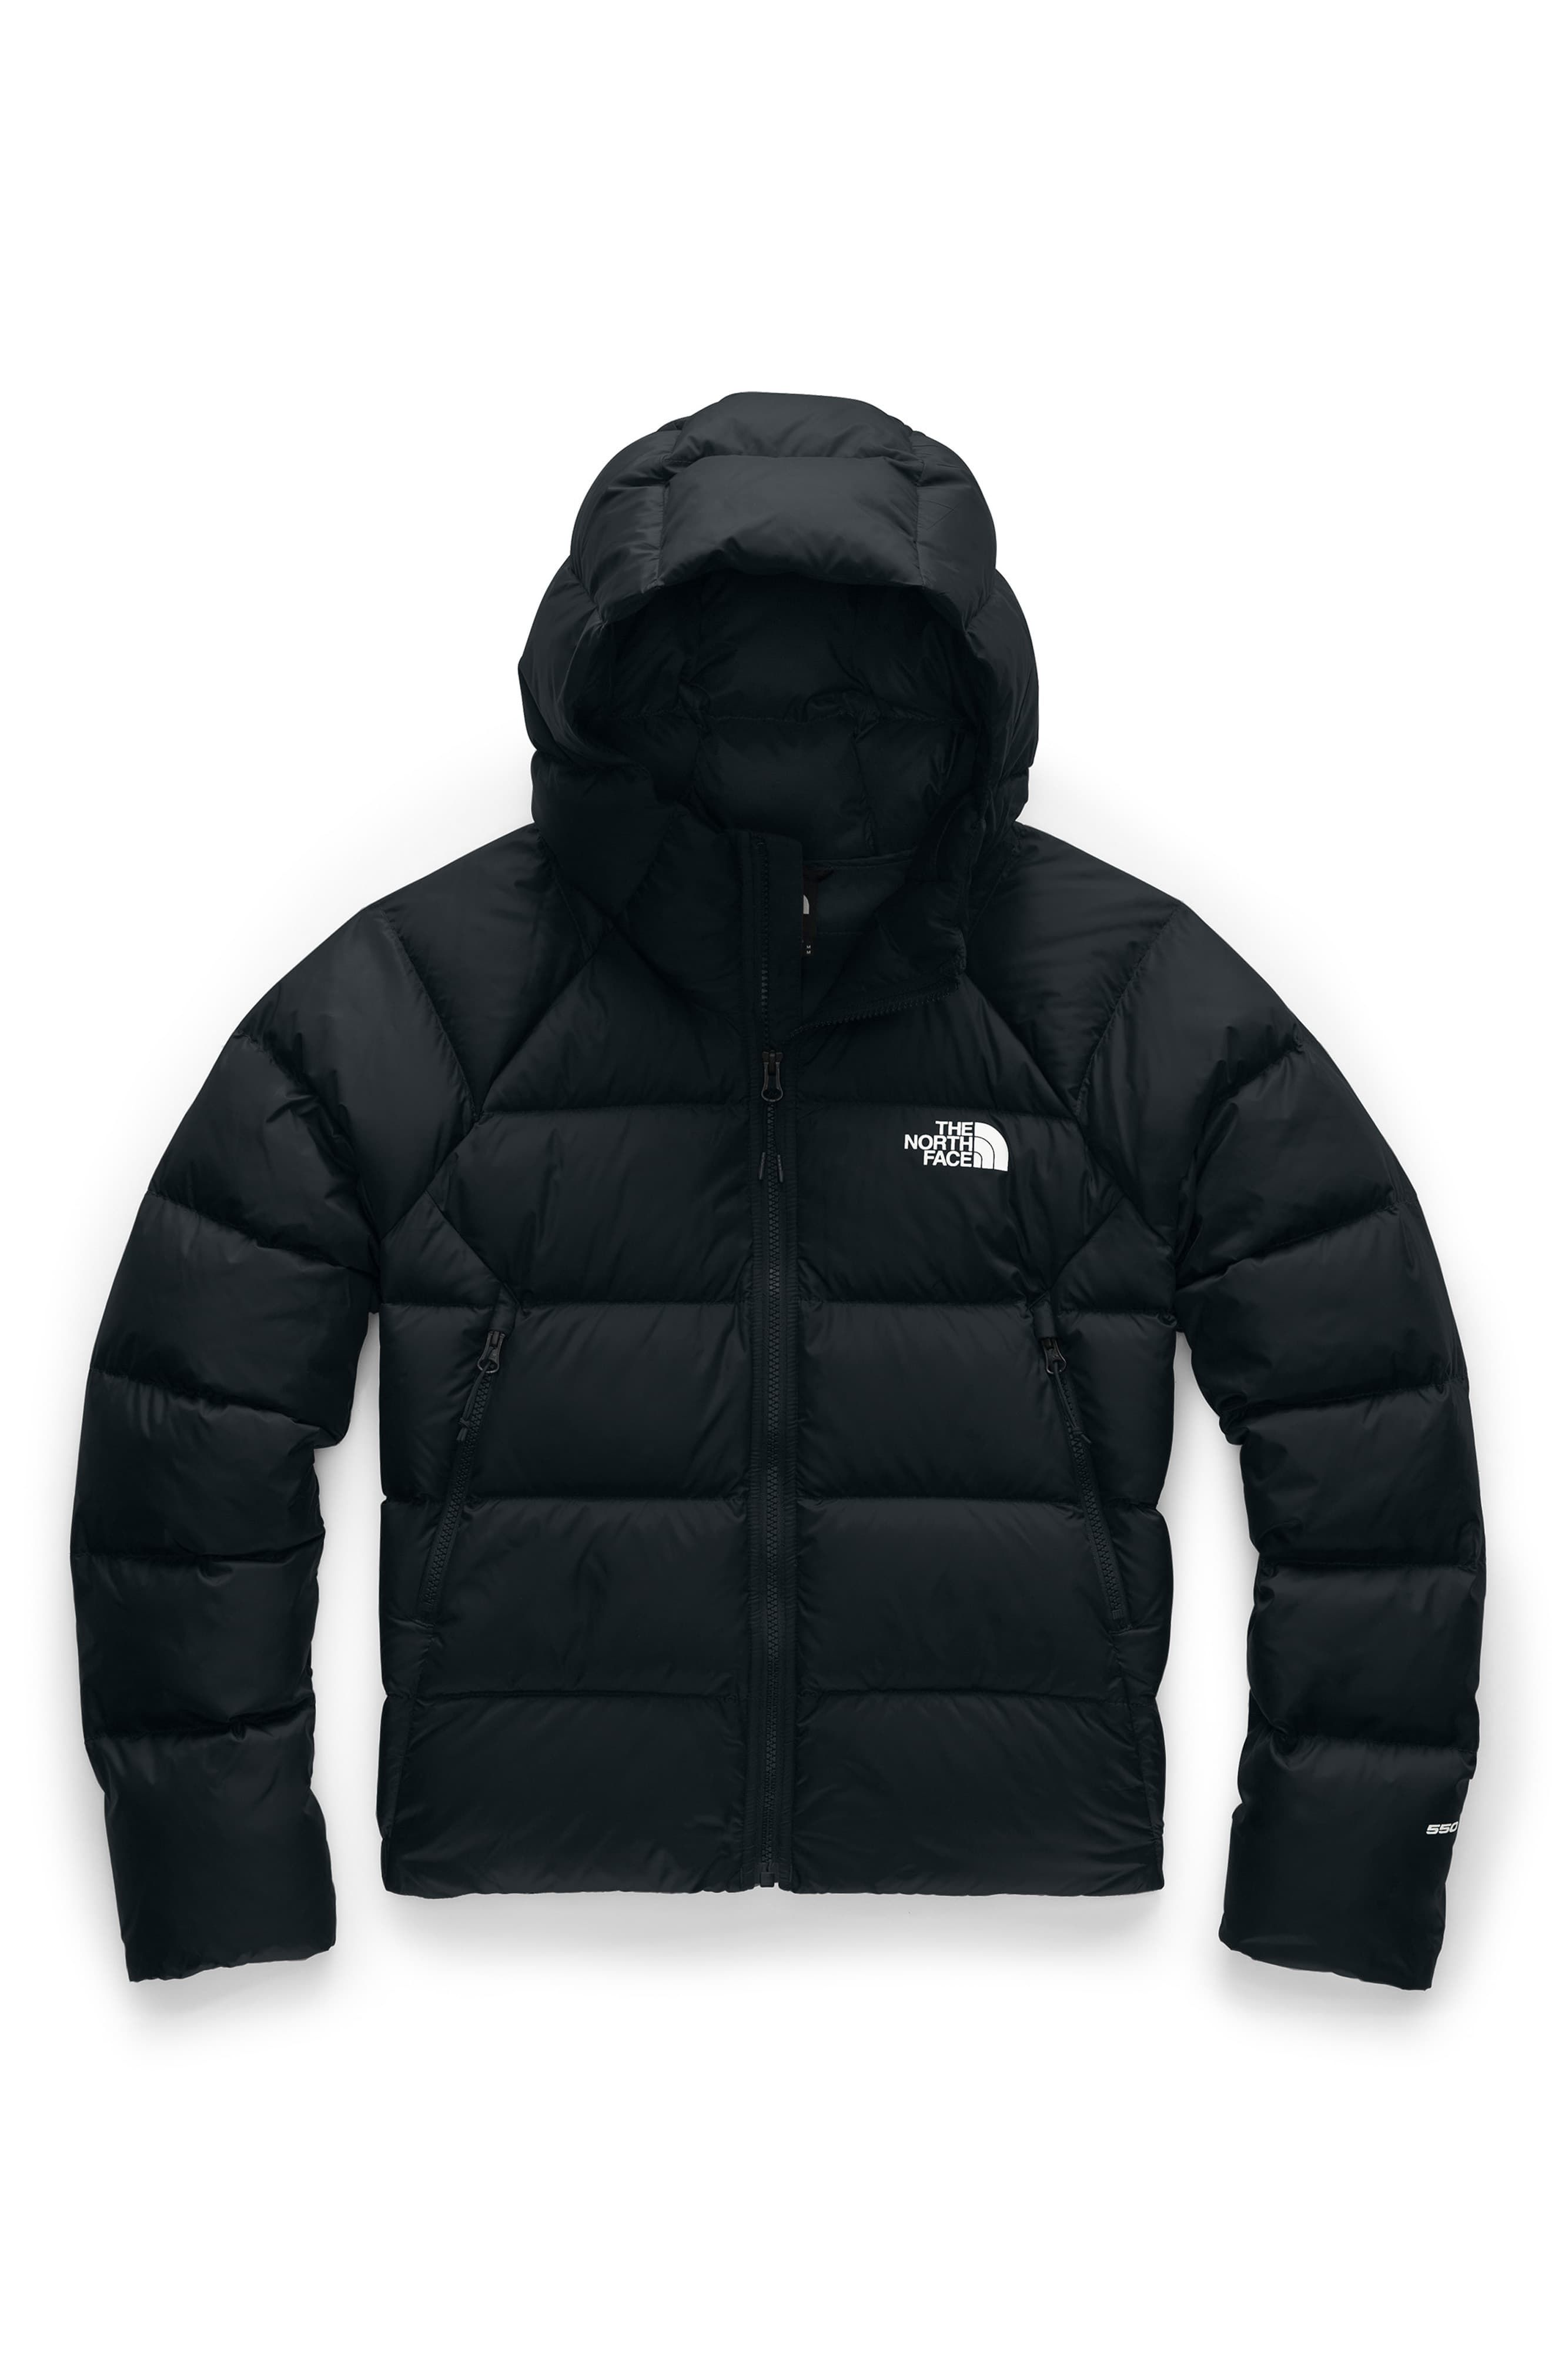 The North Face Hyalite 550 Fill Power Down Jacket Nordstrom The North Face North Face Women Jackets [ 4048 x 2640 Pixel ]